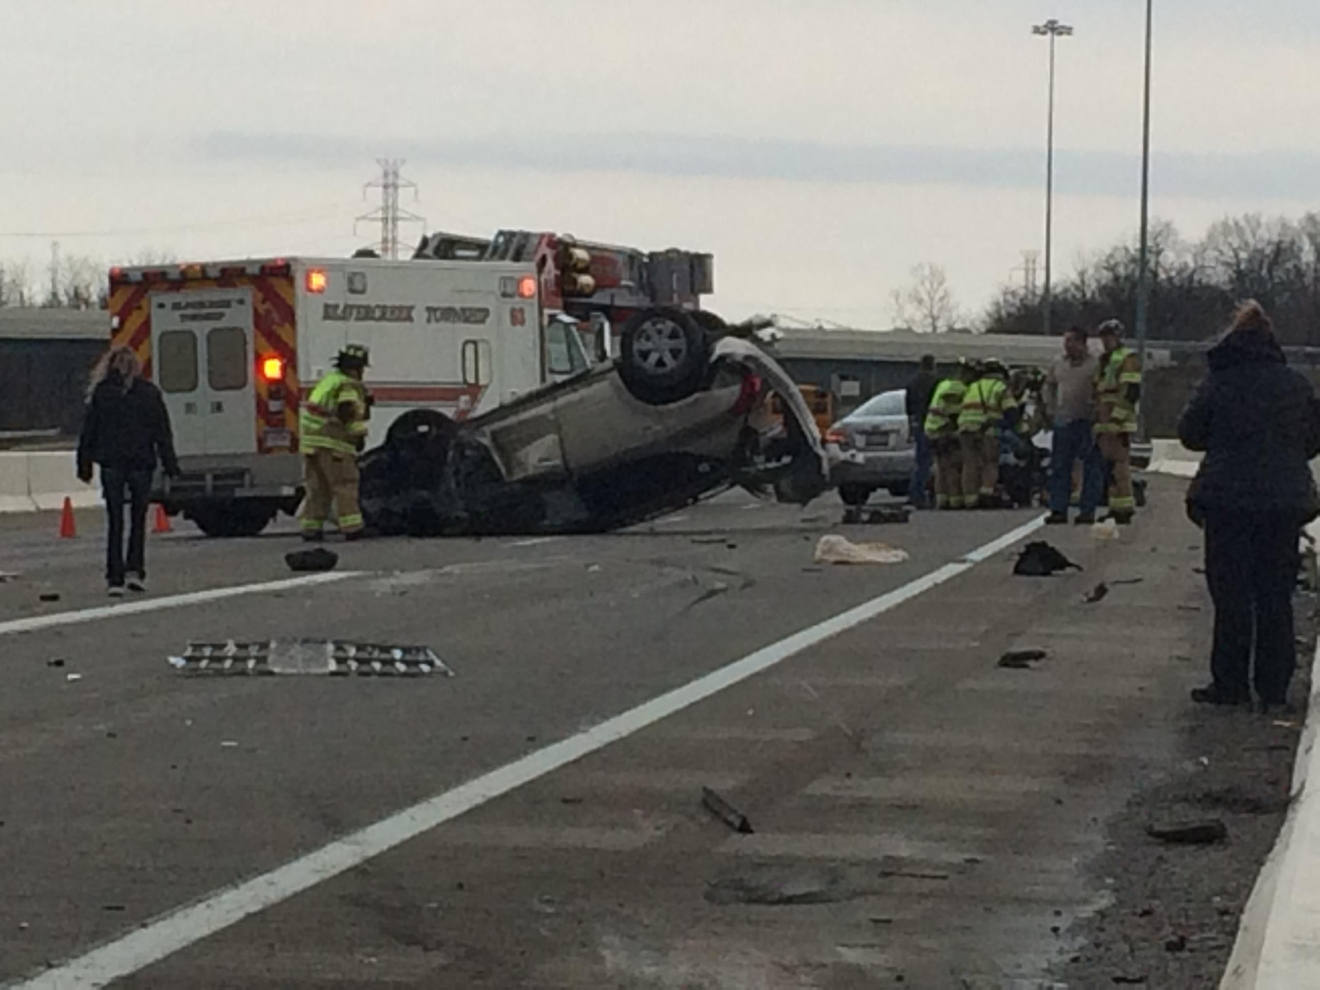 Good Samaritan pulls driver to safety after vehicle flips multiple times on U.S. 35 (WKEF/WRGT)